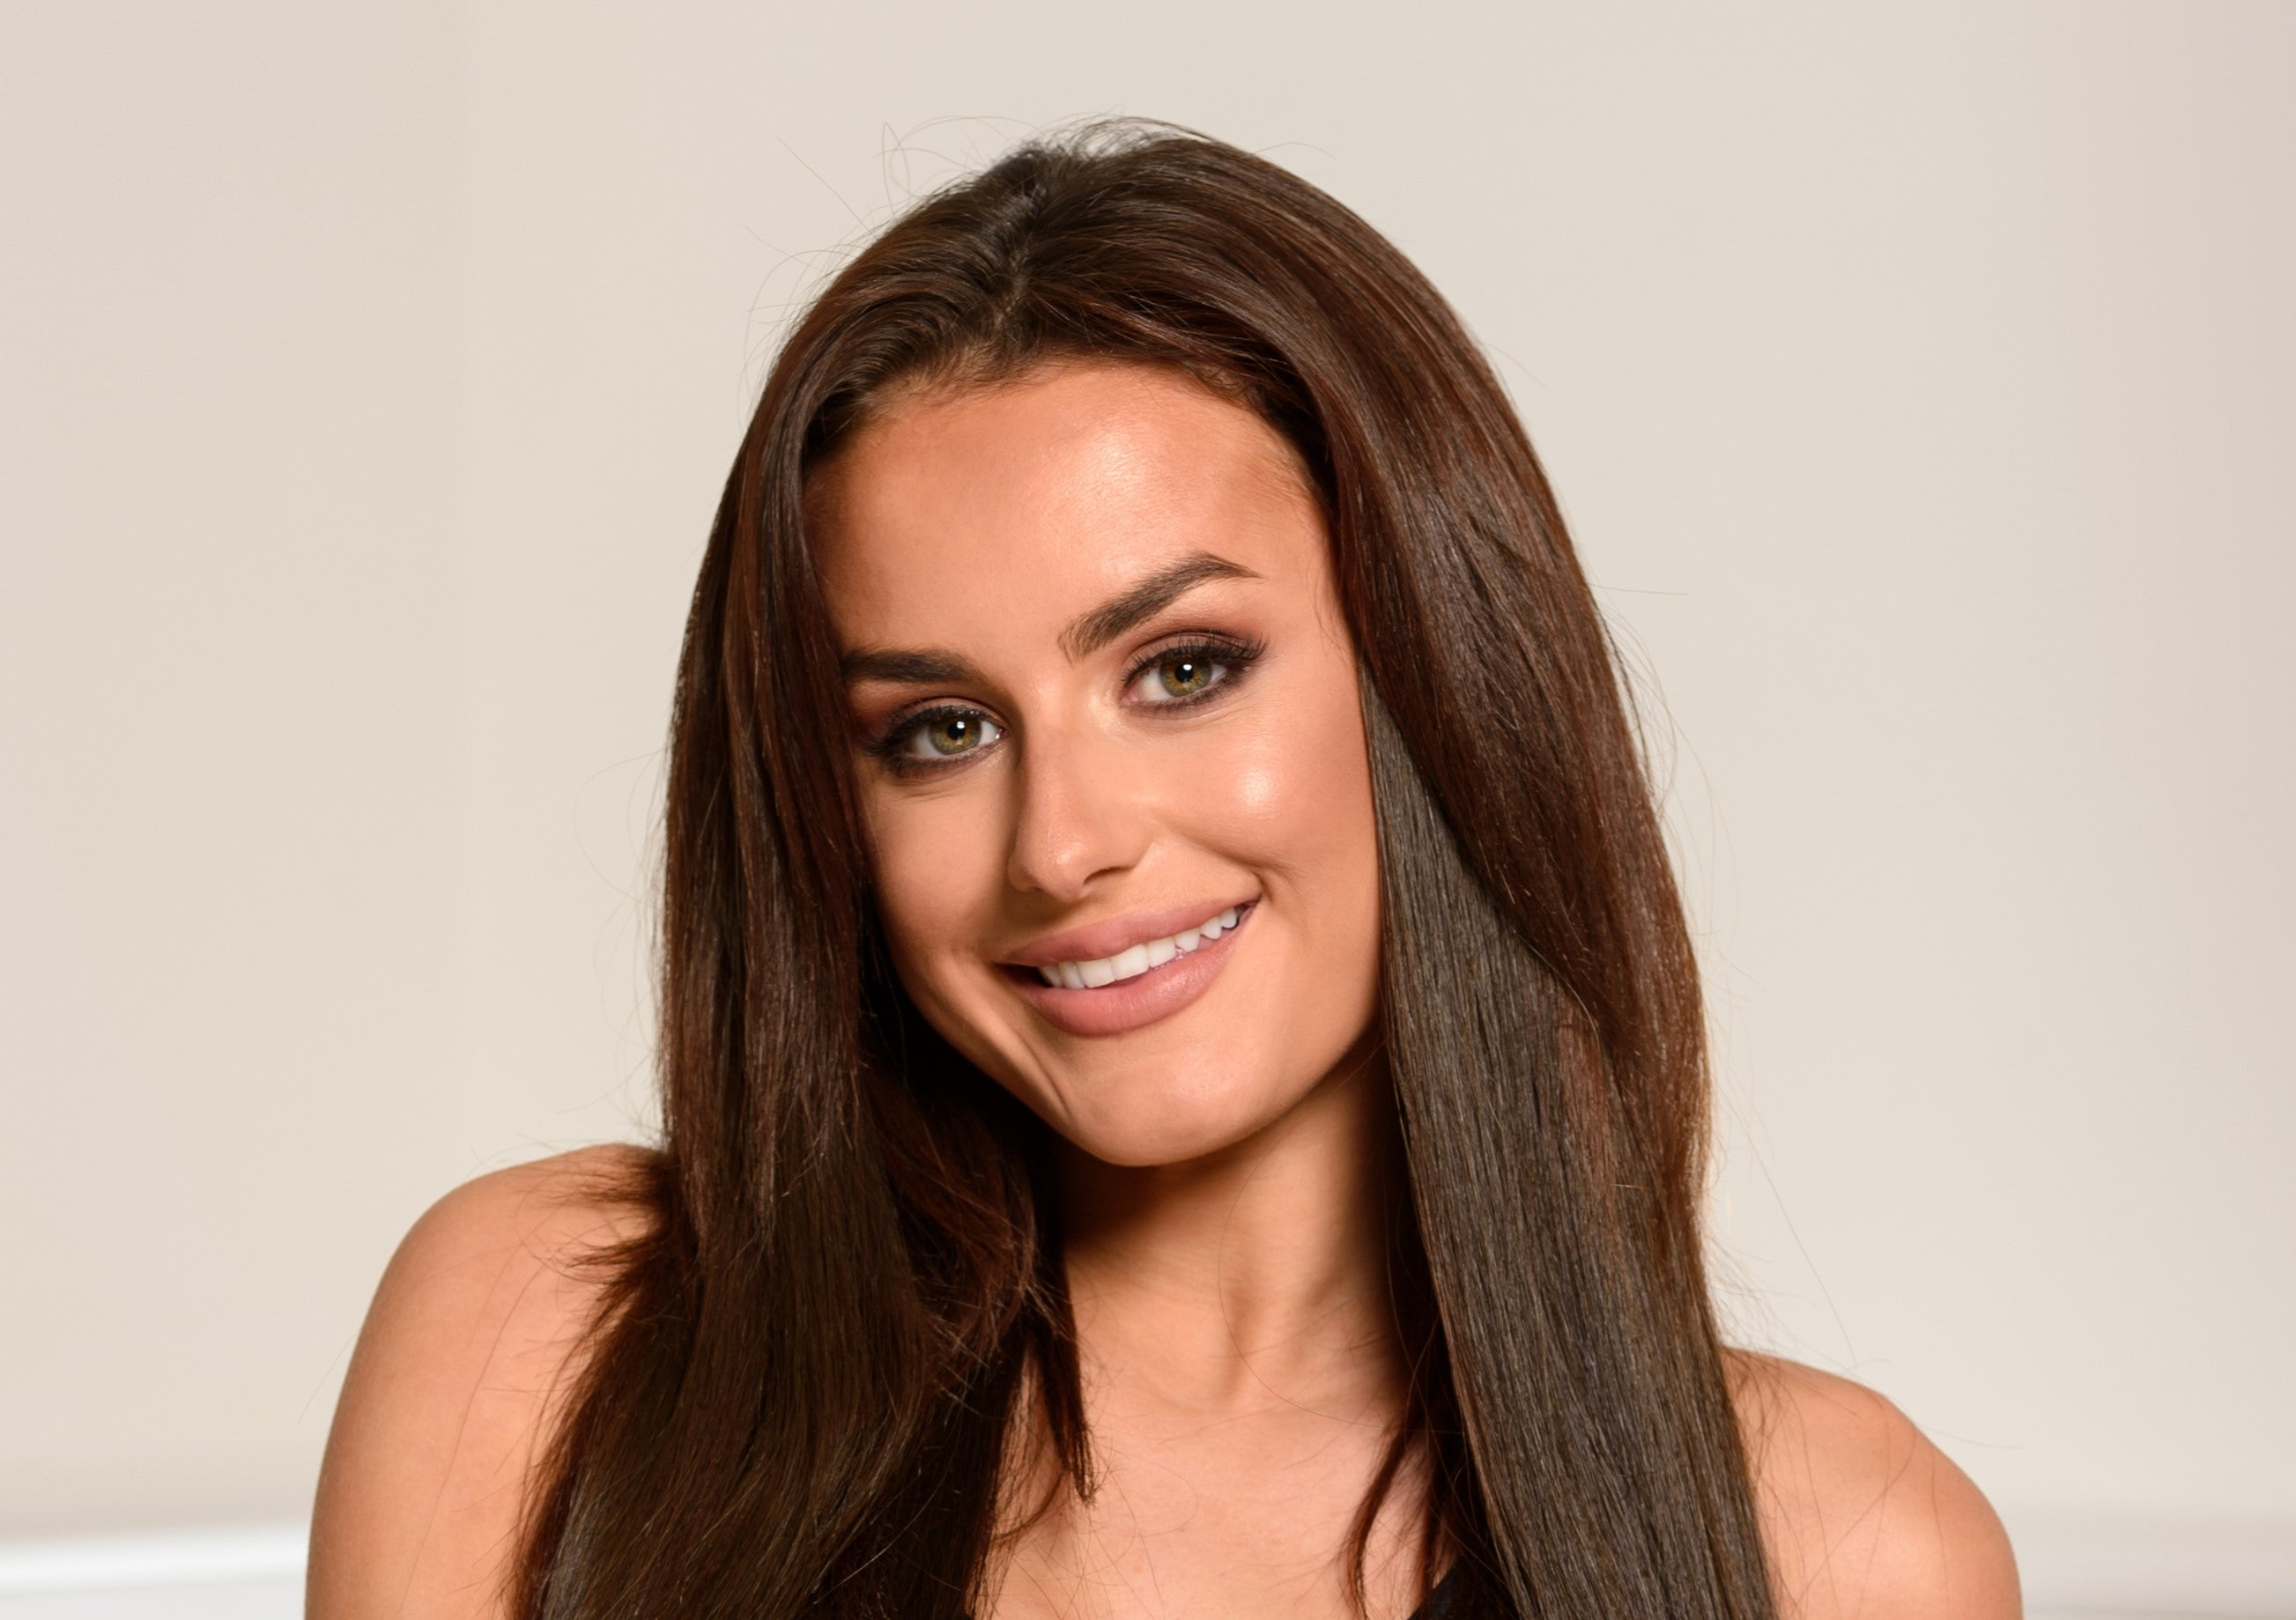 Pictures Amber Davies naked (58 foto and video), Tits, Sideboobs, Twitter, in bikini 2018